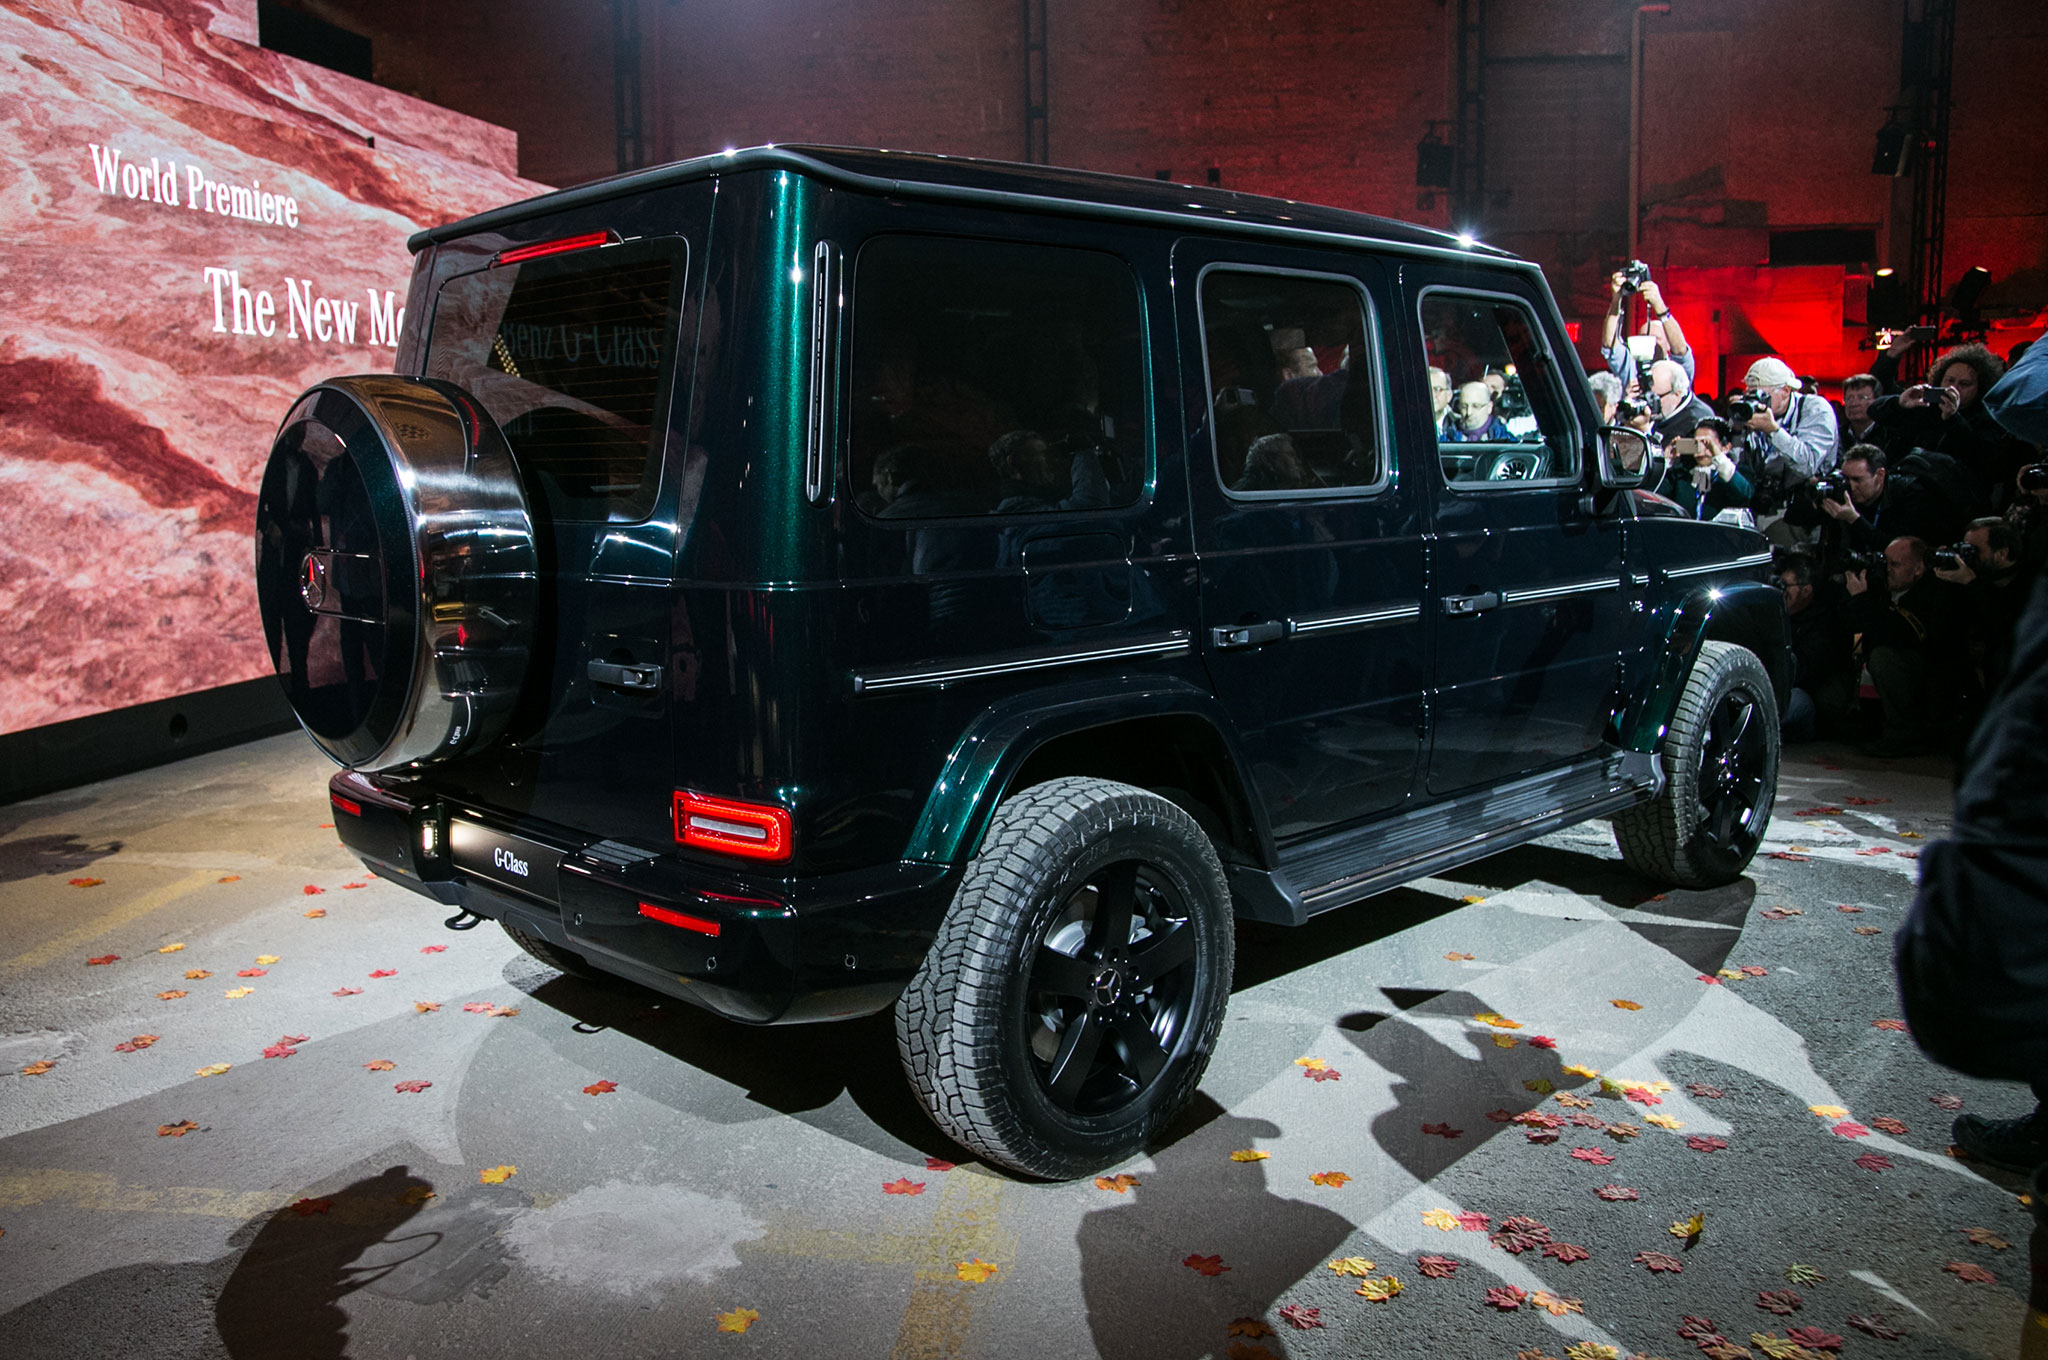 http://st.automobilemag.com/uploads/sites/11/2018/01/2019-Mercedes-Benz-G-Class-rear-side-view-on-stage.jpg